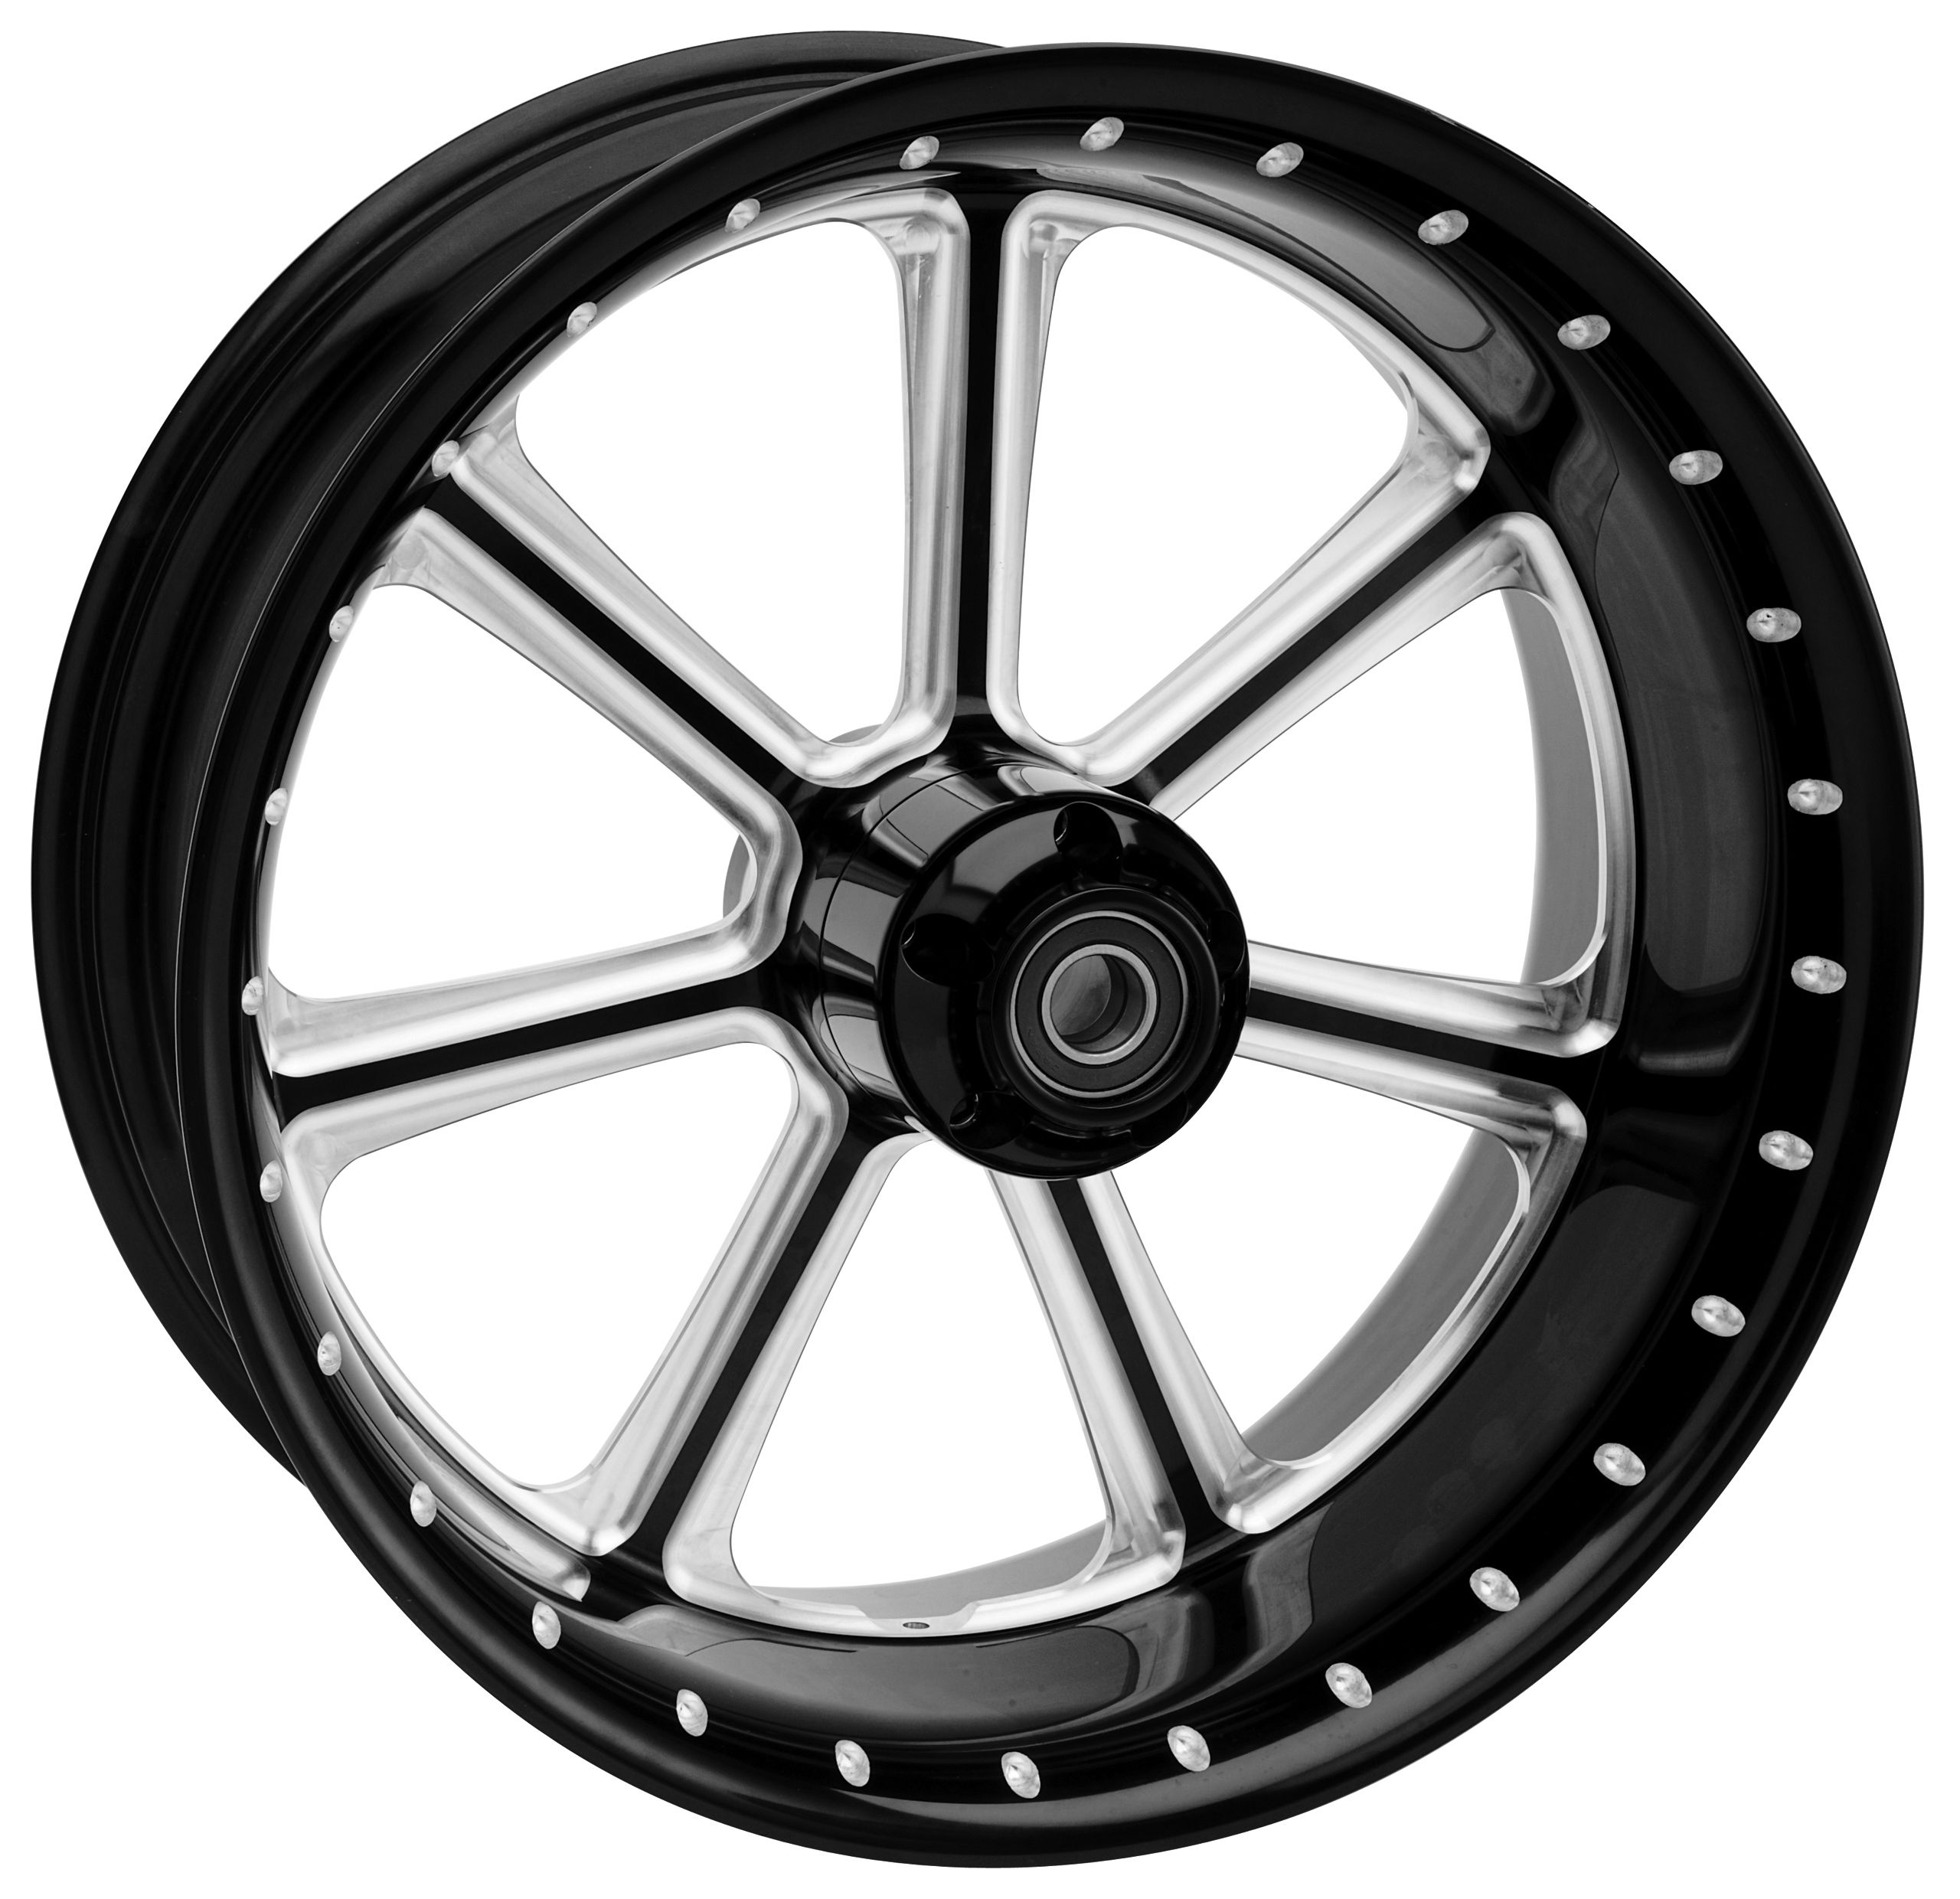 roland sands 17 x 6 rear wheel for harley touring 2009. Black Bedroom Furniture Sets. Home Design Ideas